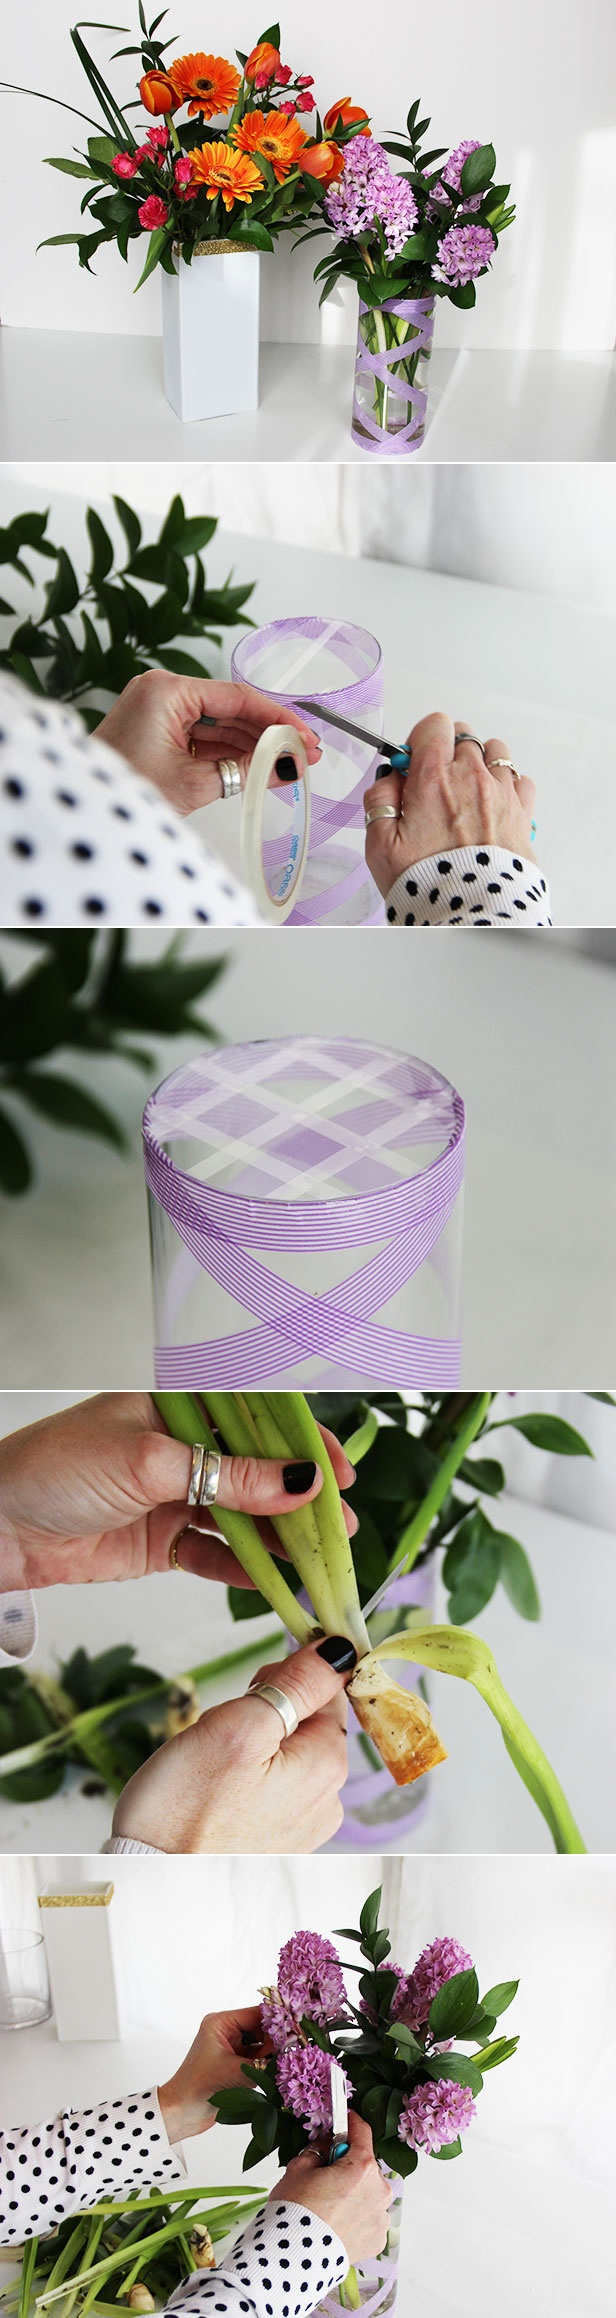 Arrange Flowers Like a Pro >> http://blog.diynetwork.com/maderemade/2013/05/01/how-to-arrange-grocery-store-flowers/?soc=pinterest